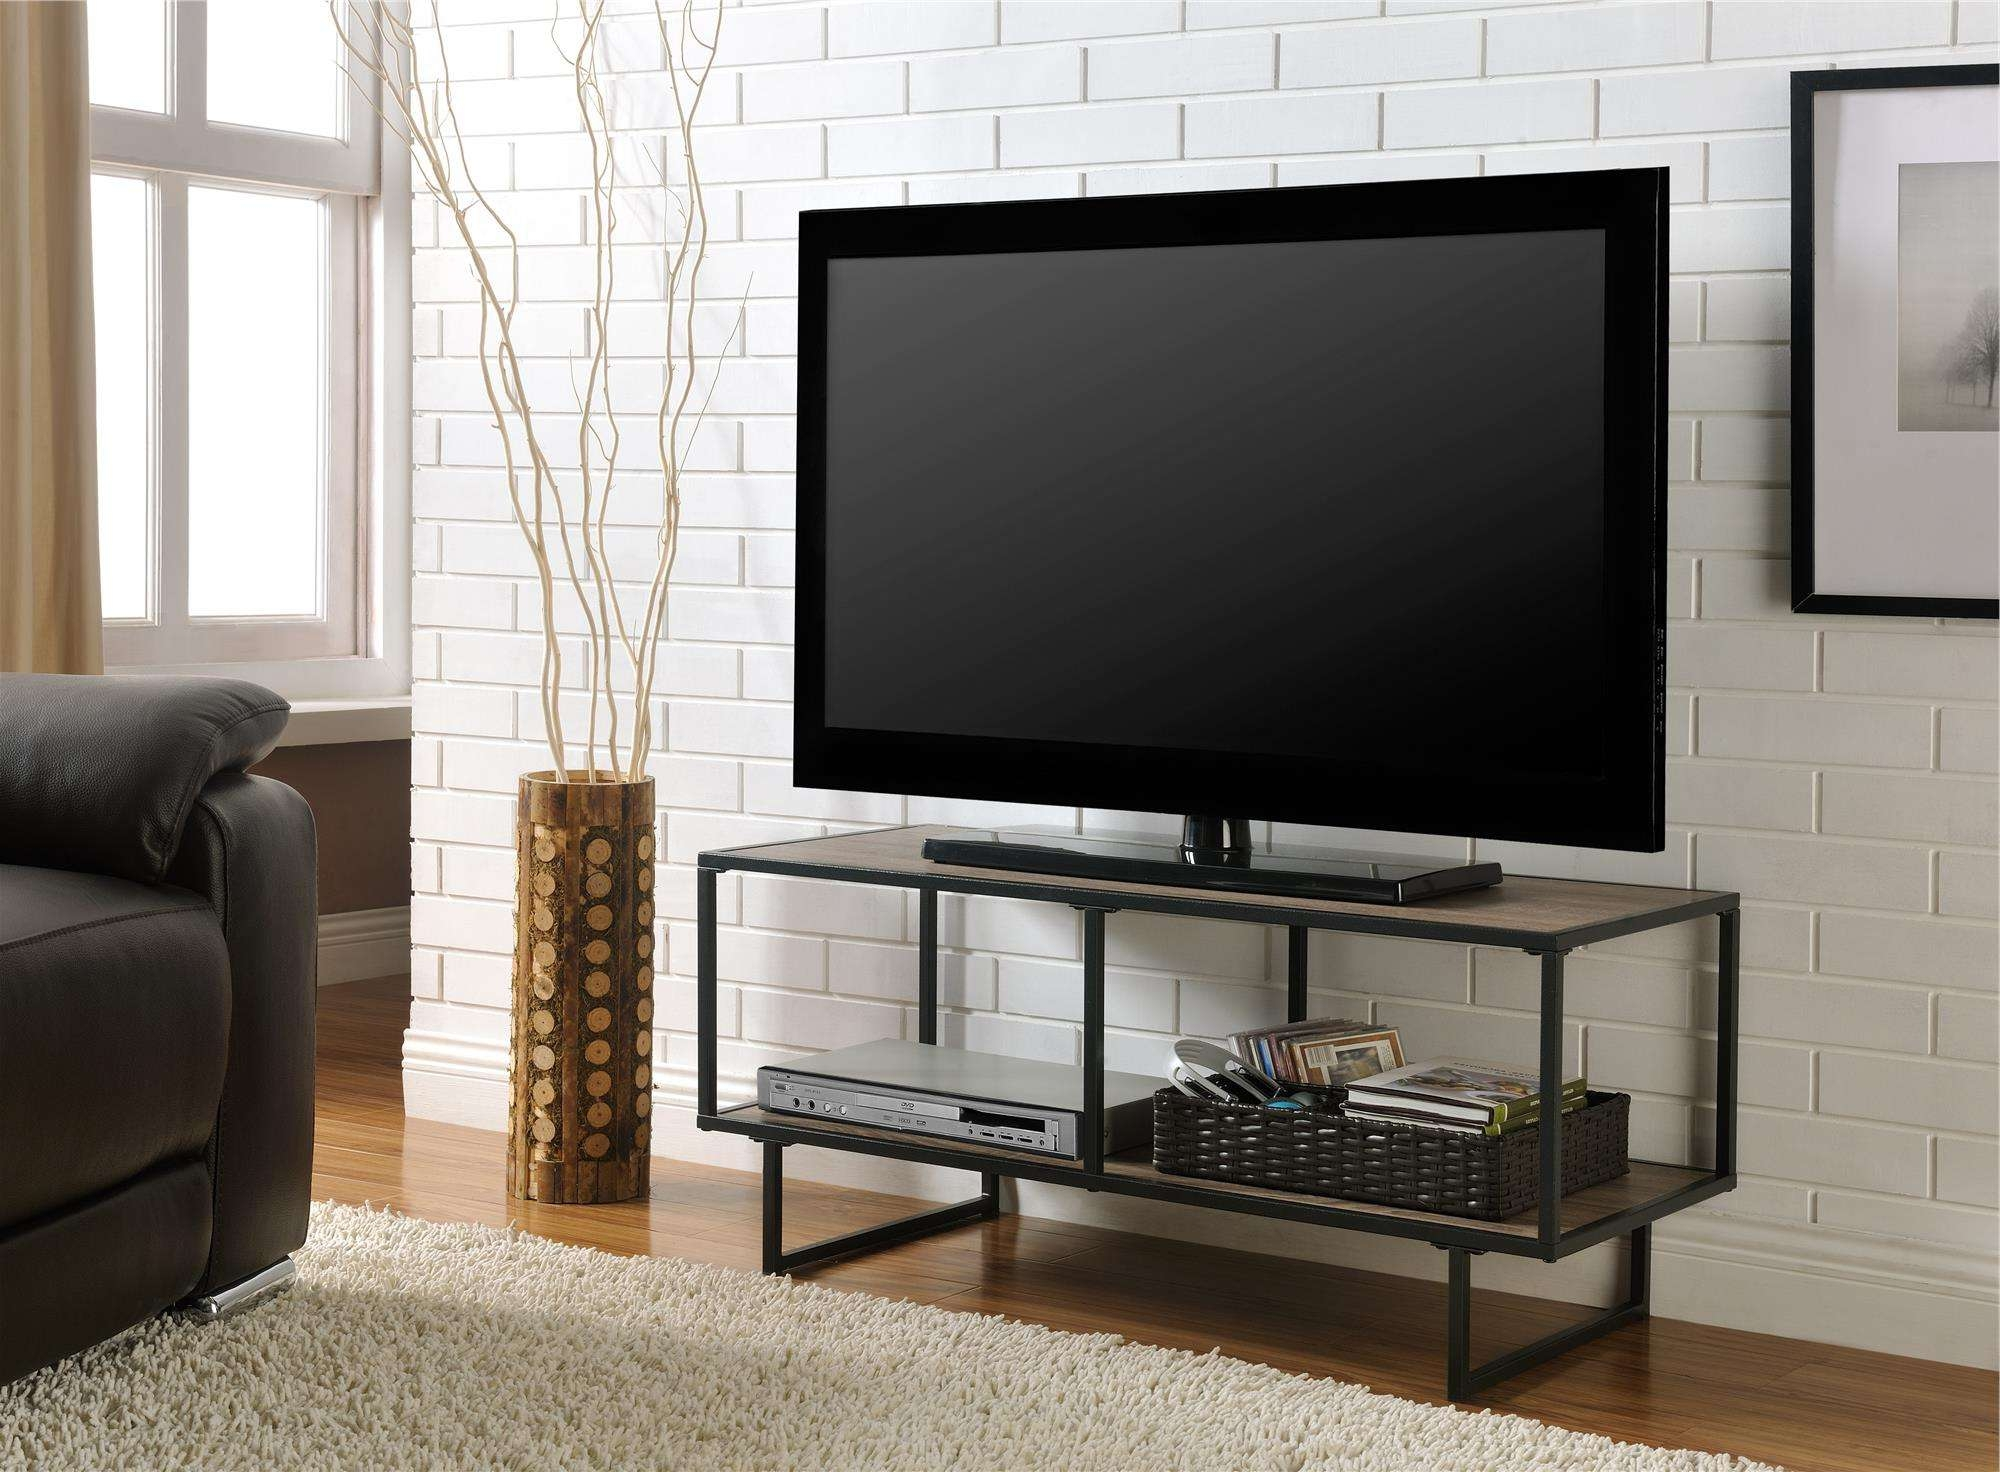 Emmett Tv Stand/coffee Table For Tvs Up To Throughout Newest Tv Stand Coffee Table Sets (View 9 of 20)